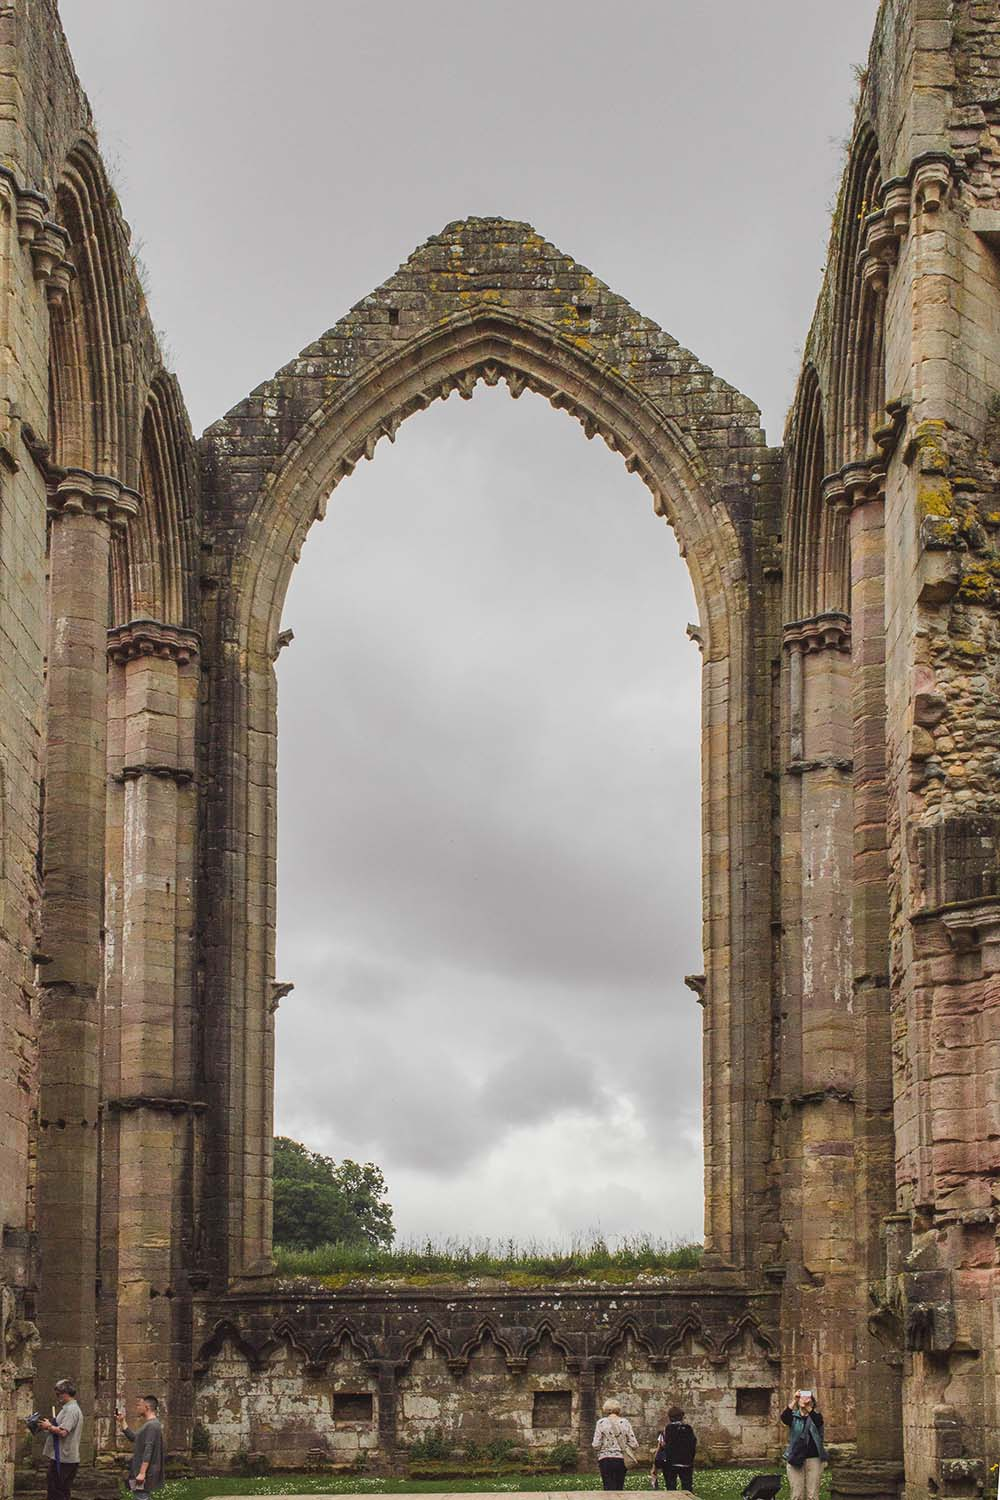 fountains-abbey-england-ruins.jpg